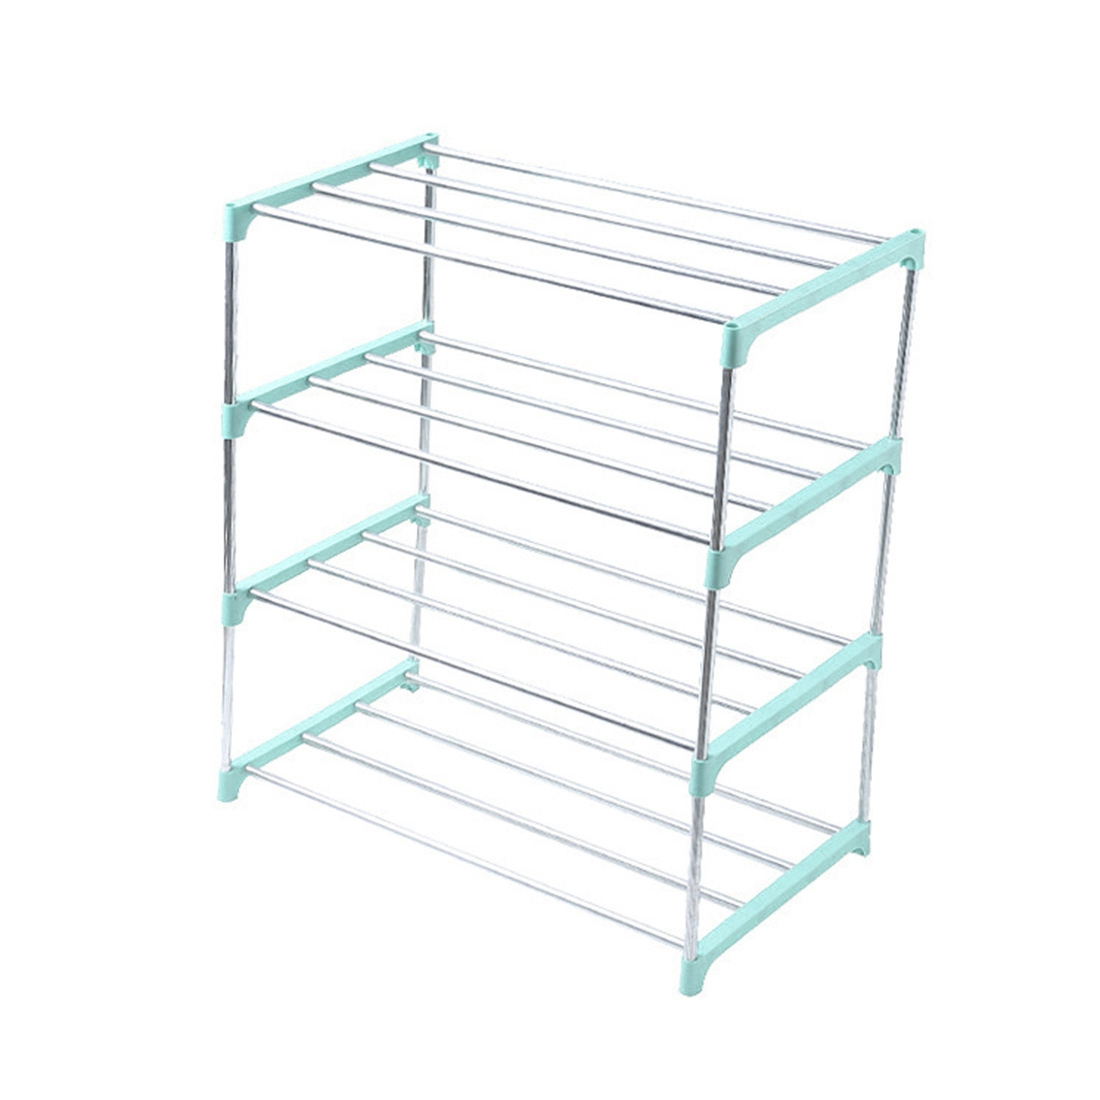 Dustproof Shoe Cabinets Shoes Rack Organizer Home Bedroom Dormitory Shoe Racks Shelf Cabinet Living Room Furniture Dropshipping